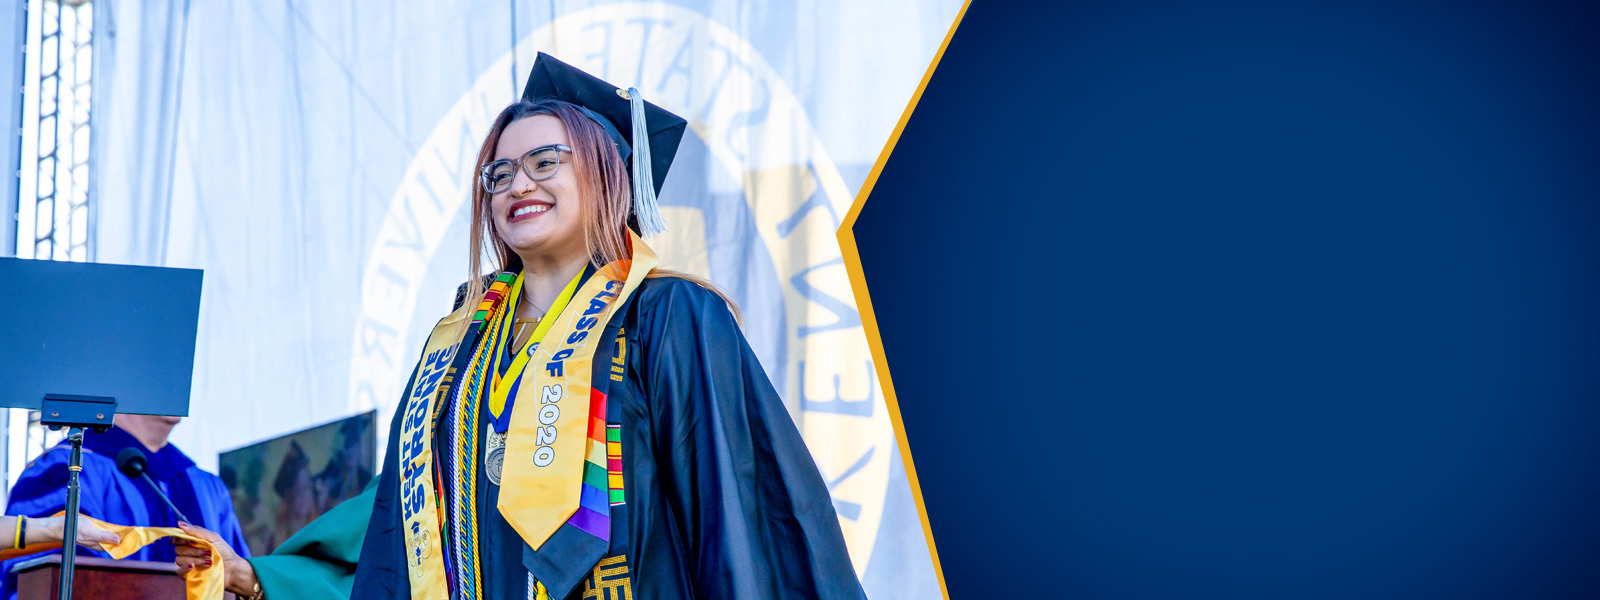 A Kent State Graduate at Commencement